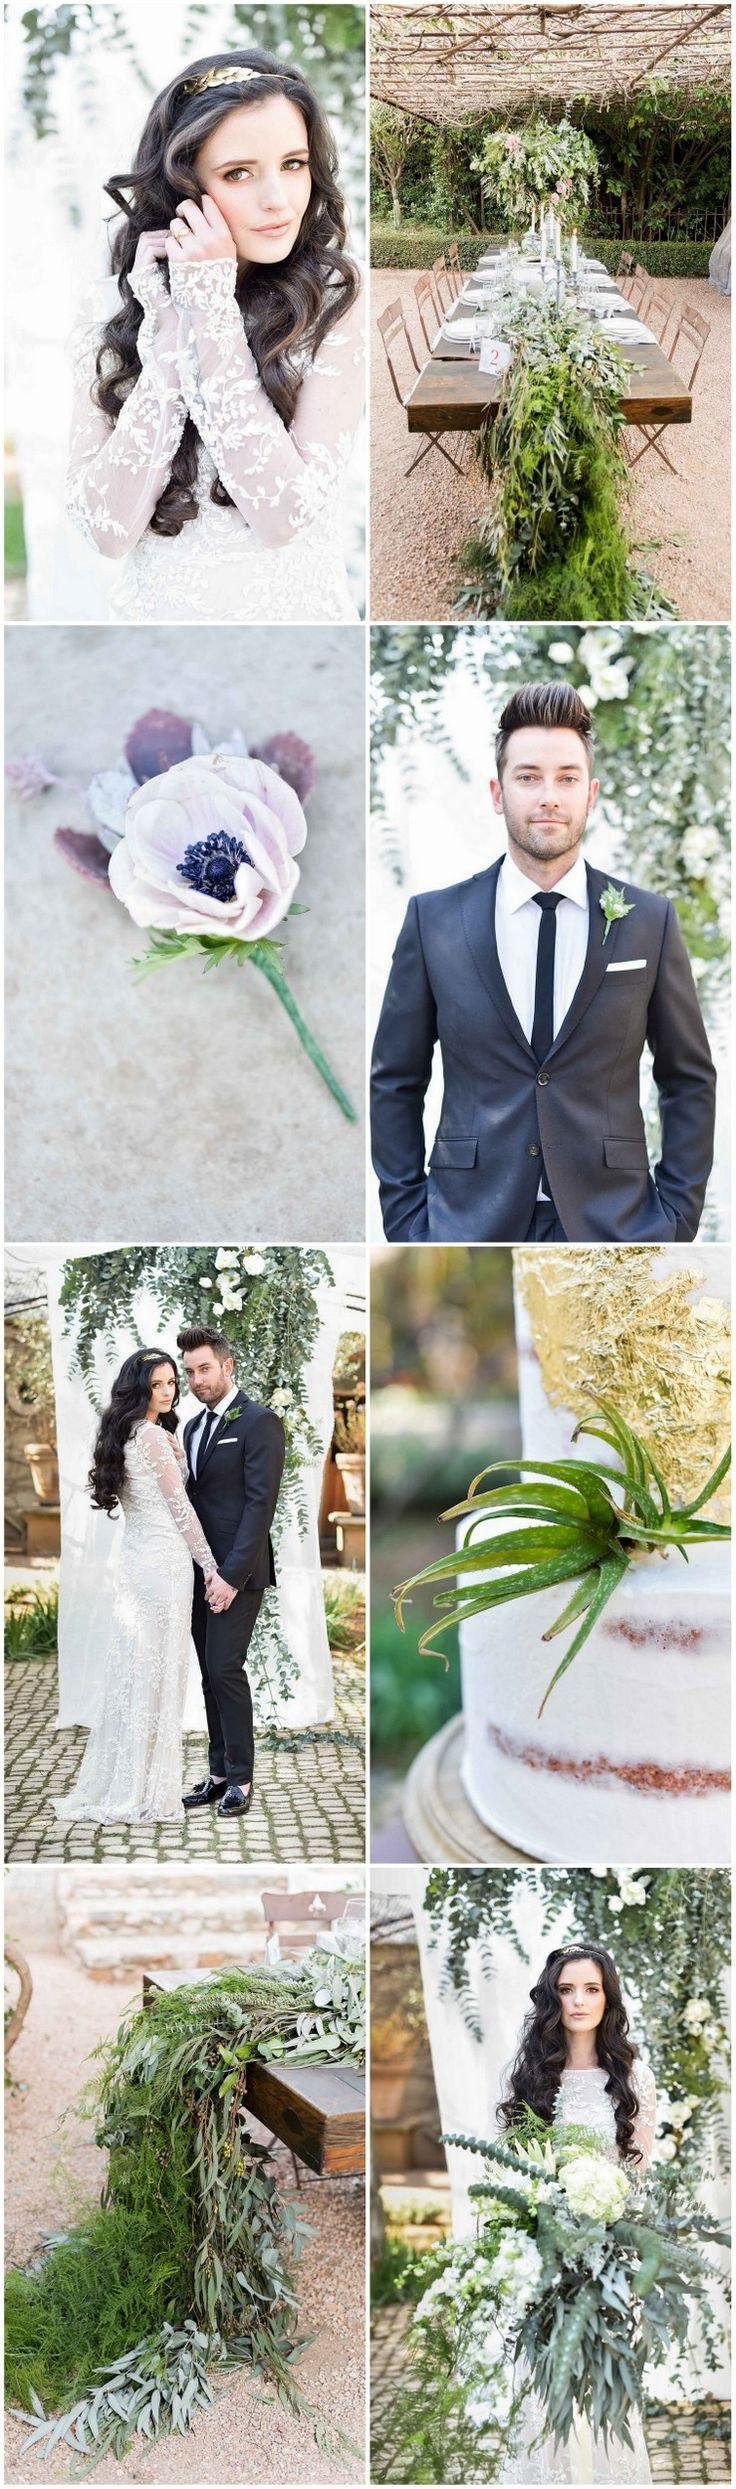 Organic, Whimsical Wedding Ideas {Jack And Jane Photography}